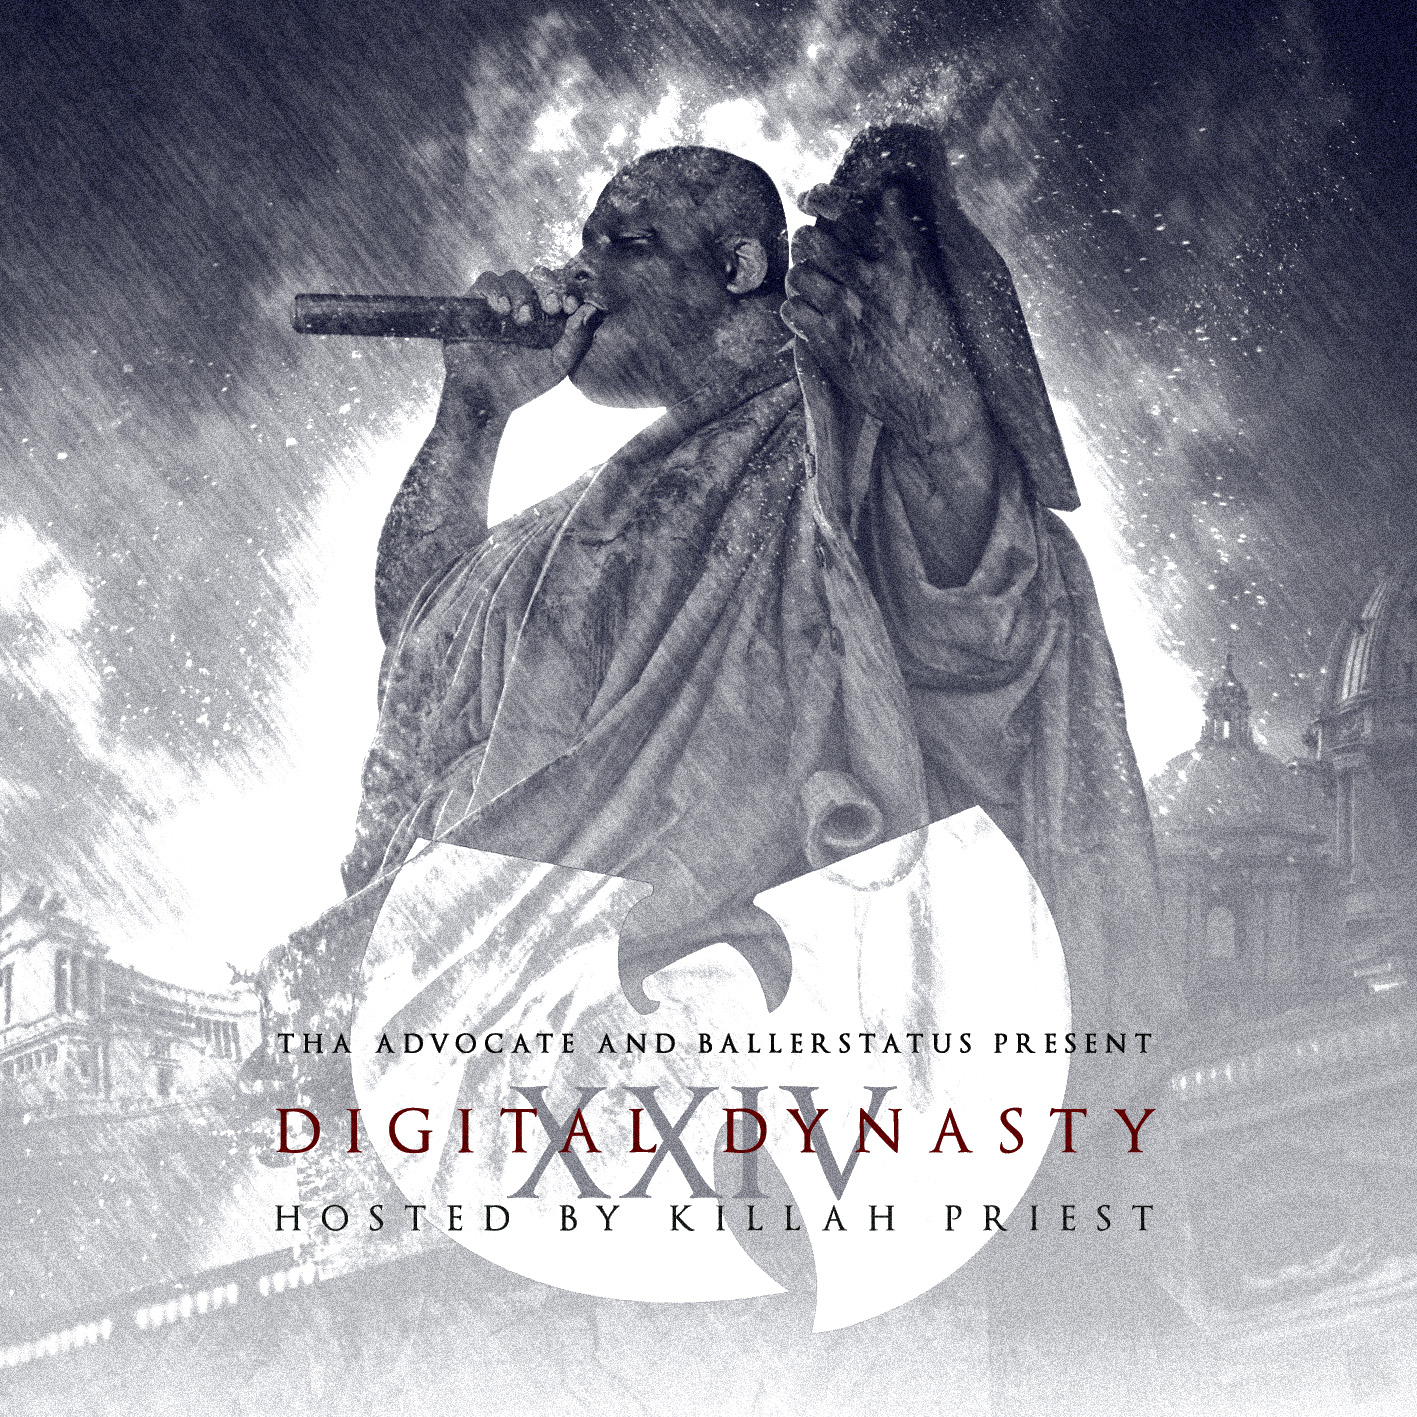 Digital Dynasty 24, Hosted By Killah Priest